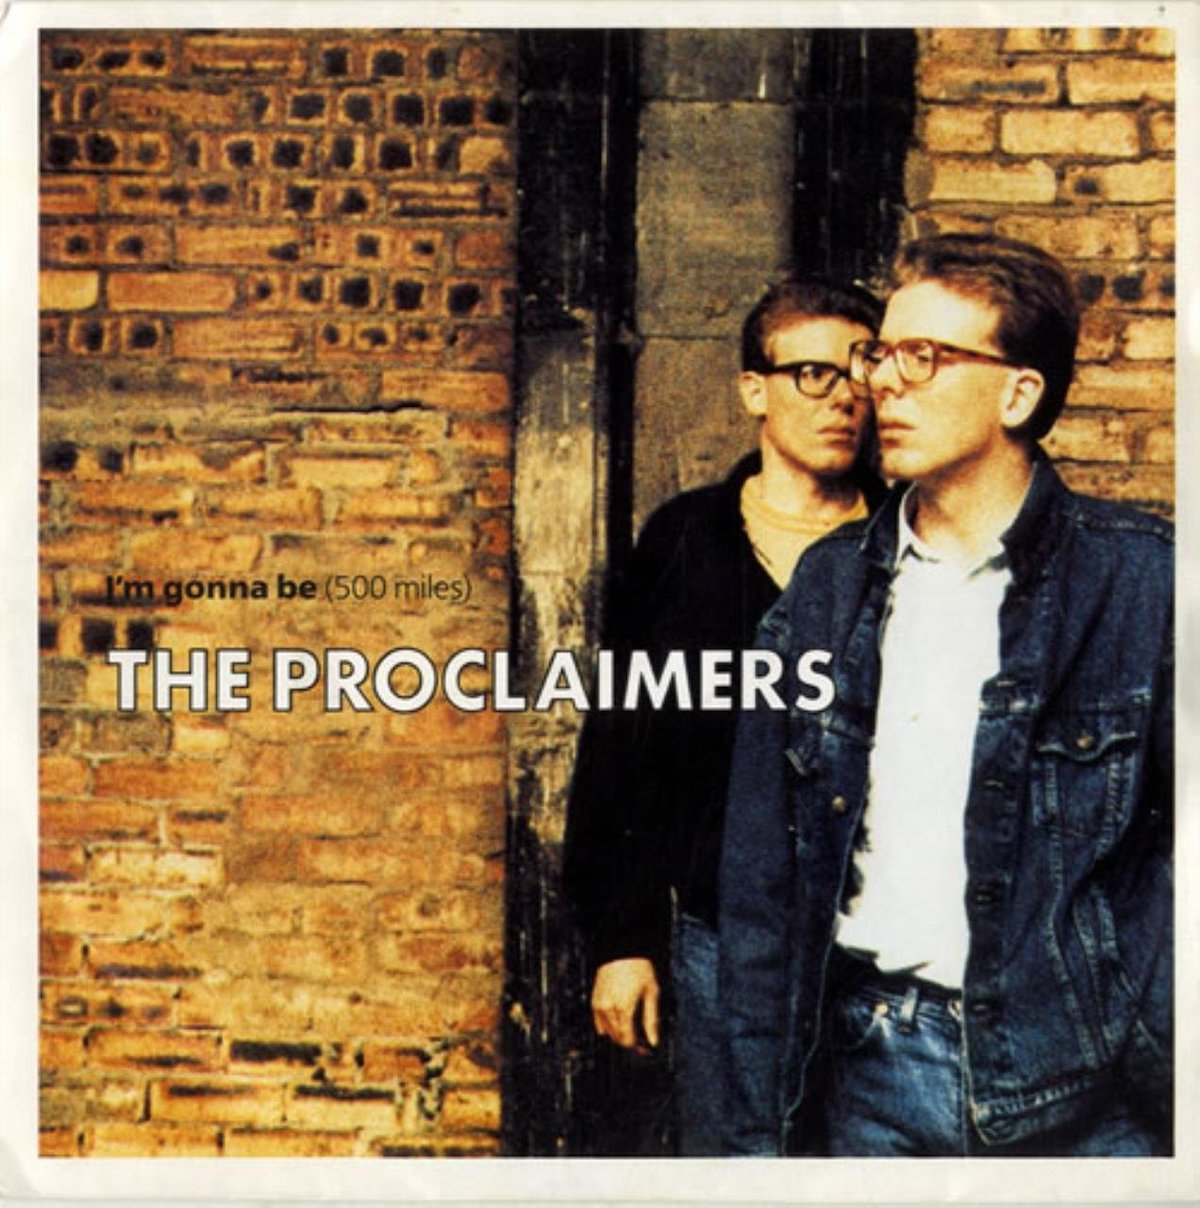 the proclaimers album cover for 500 miles, a 1980s one-hit wonder